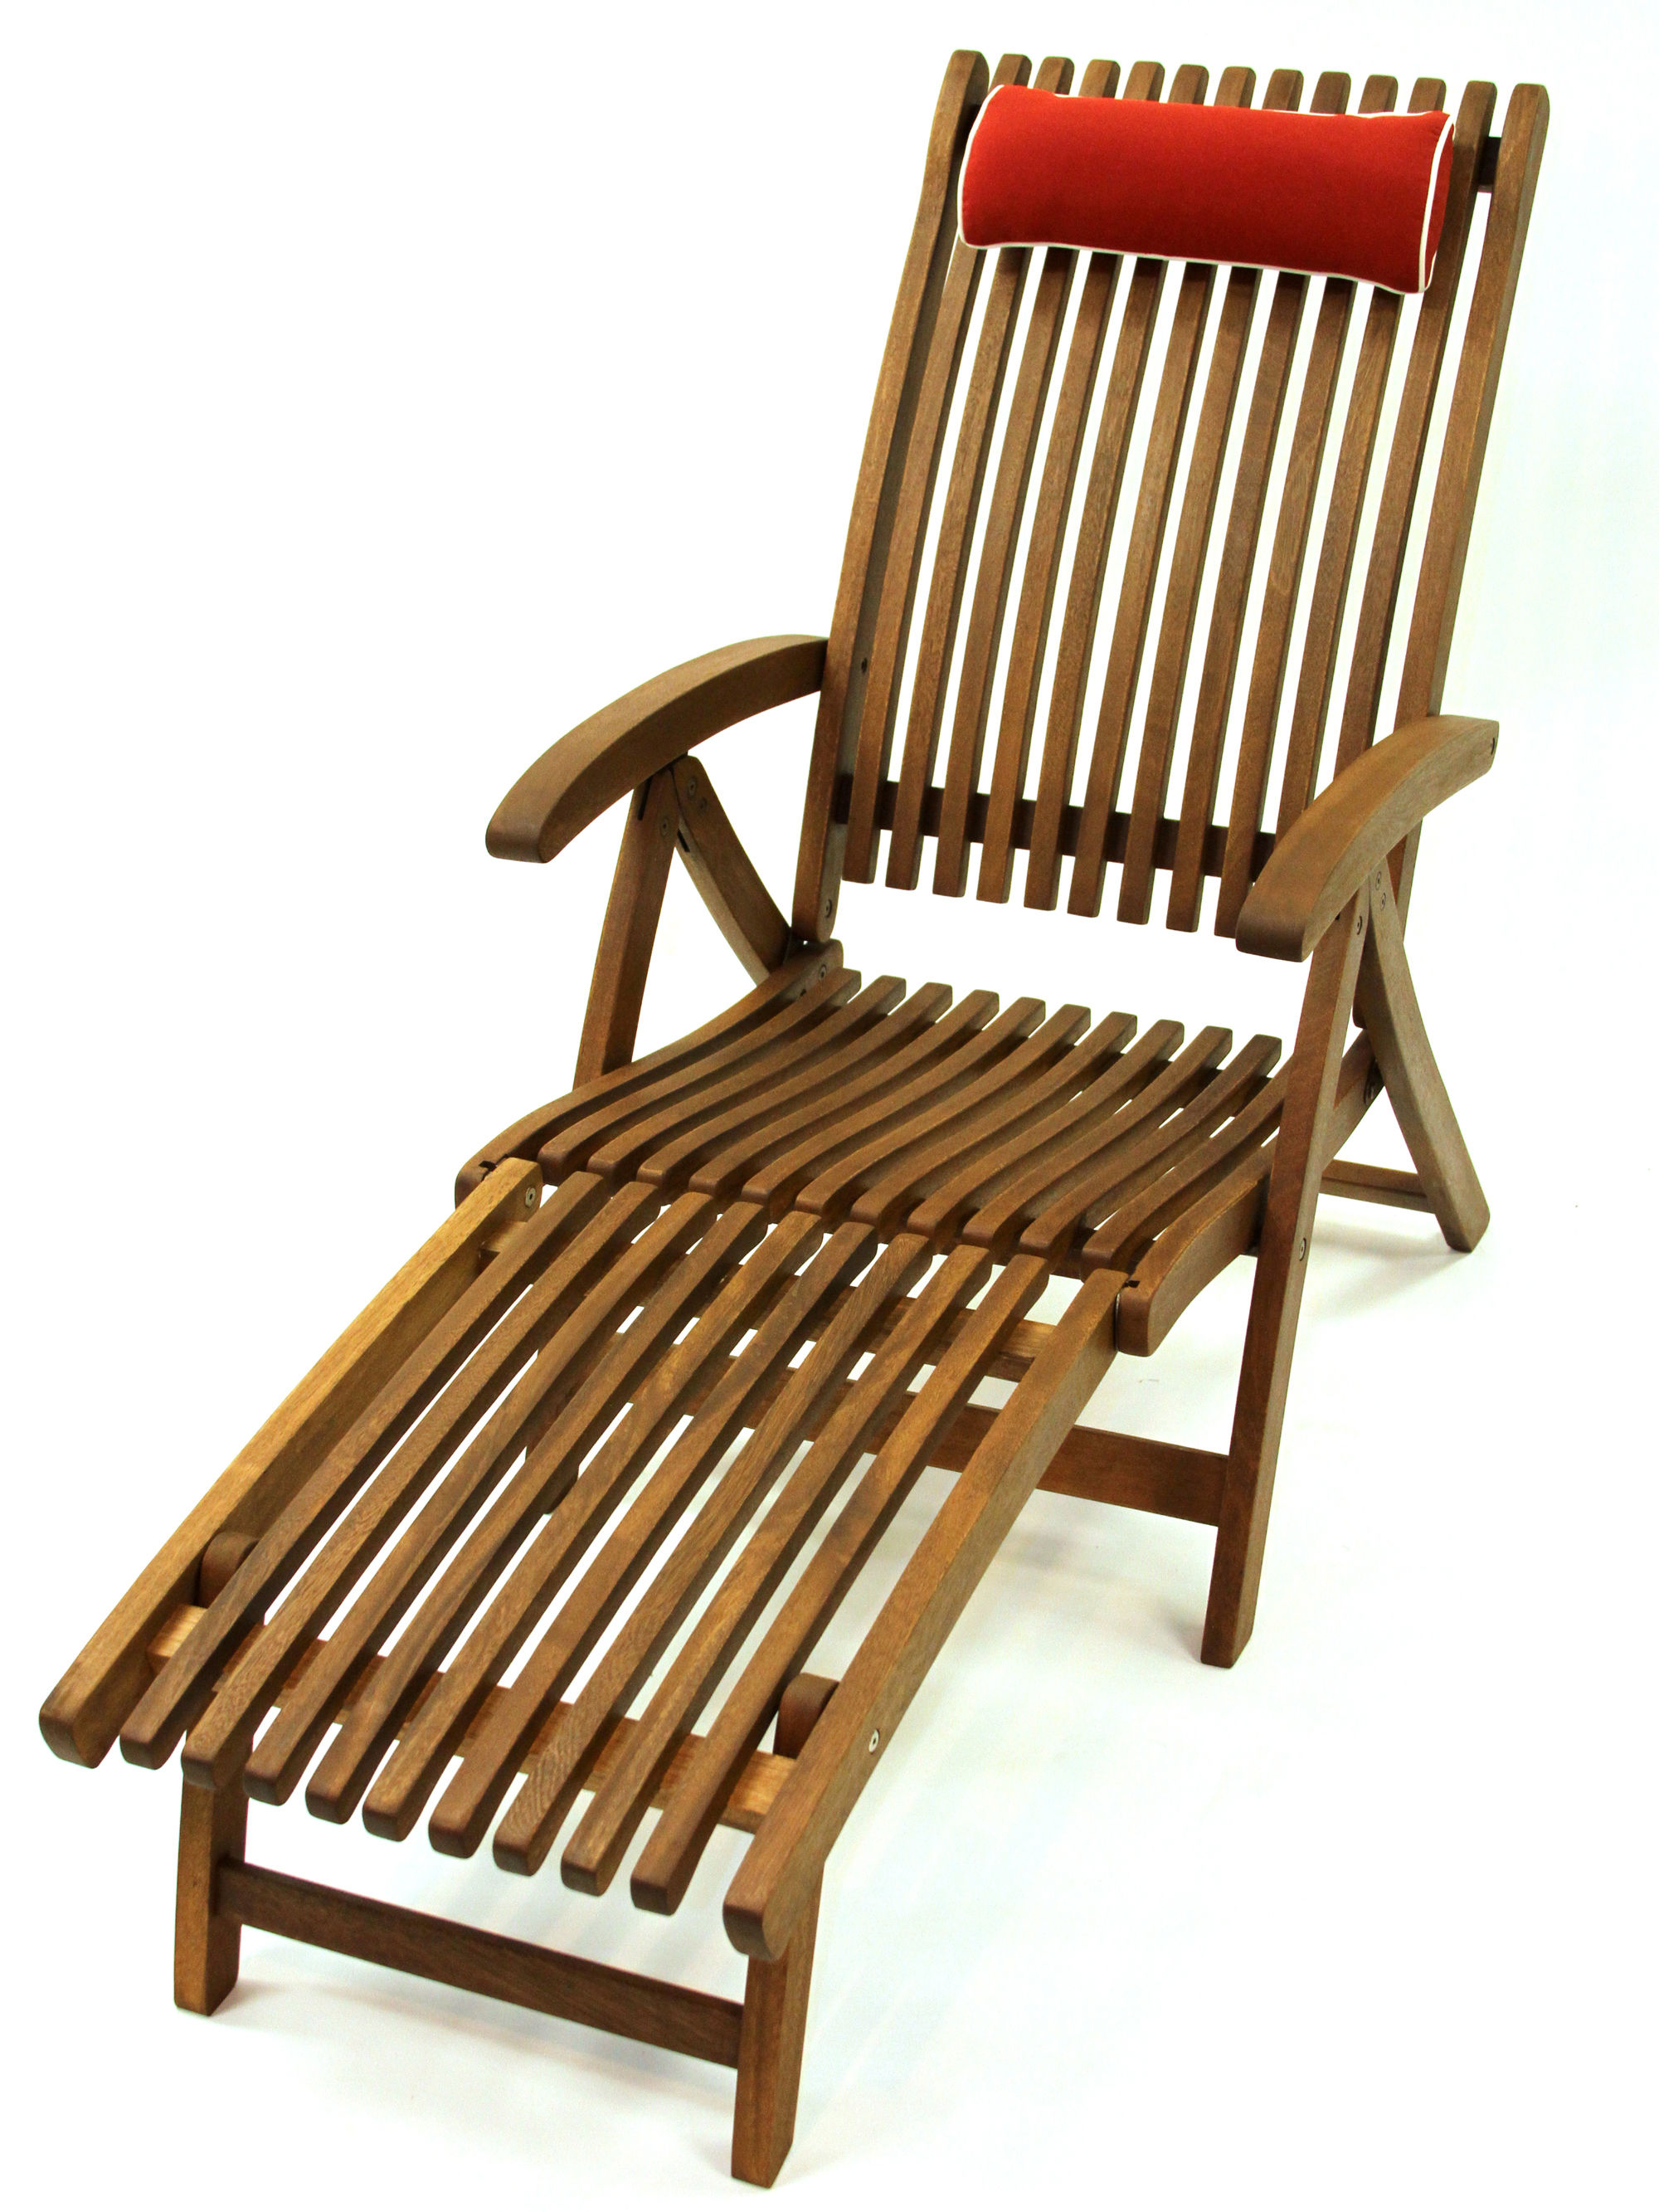 55 Wooden Outdoor Folding Lounge Chairs, Lounger Outdoor Pertaining To Famous Curved Folding Chaise Loungers (View 2 of 25)